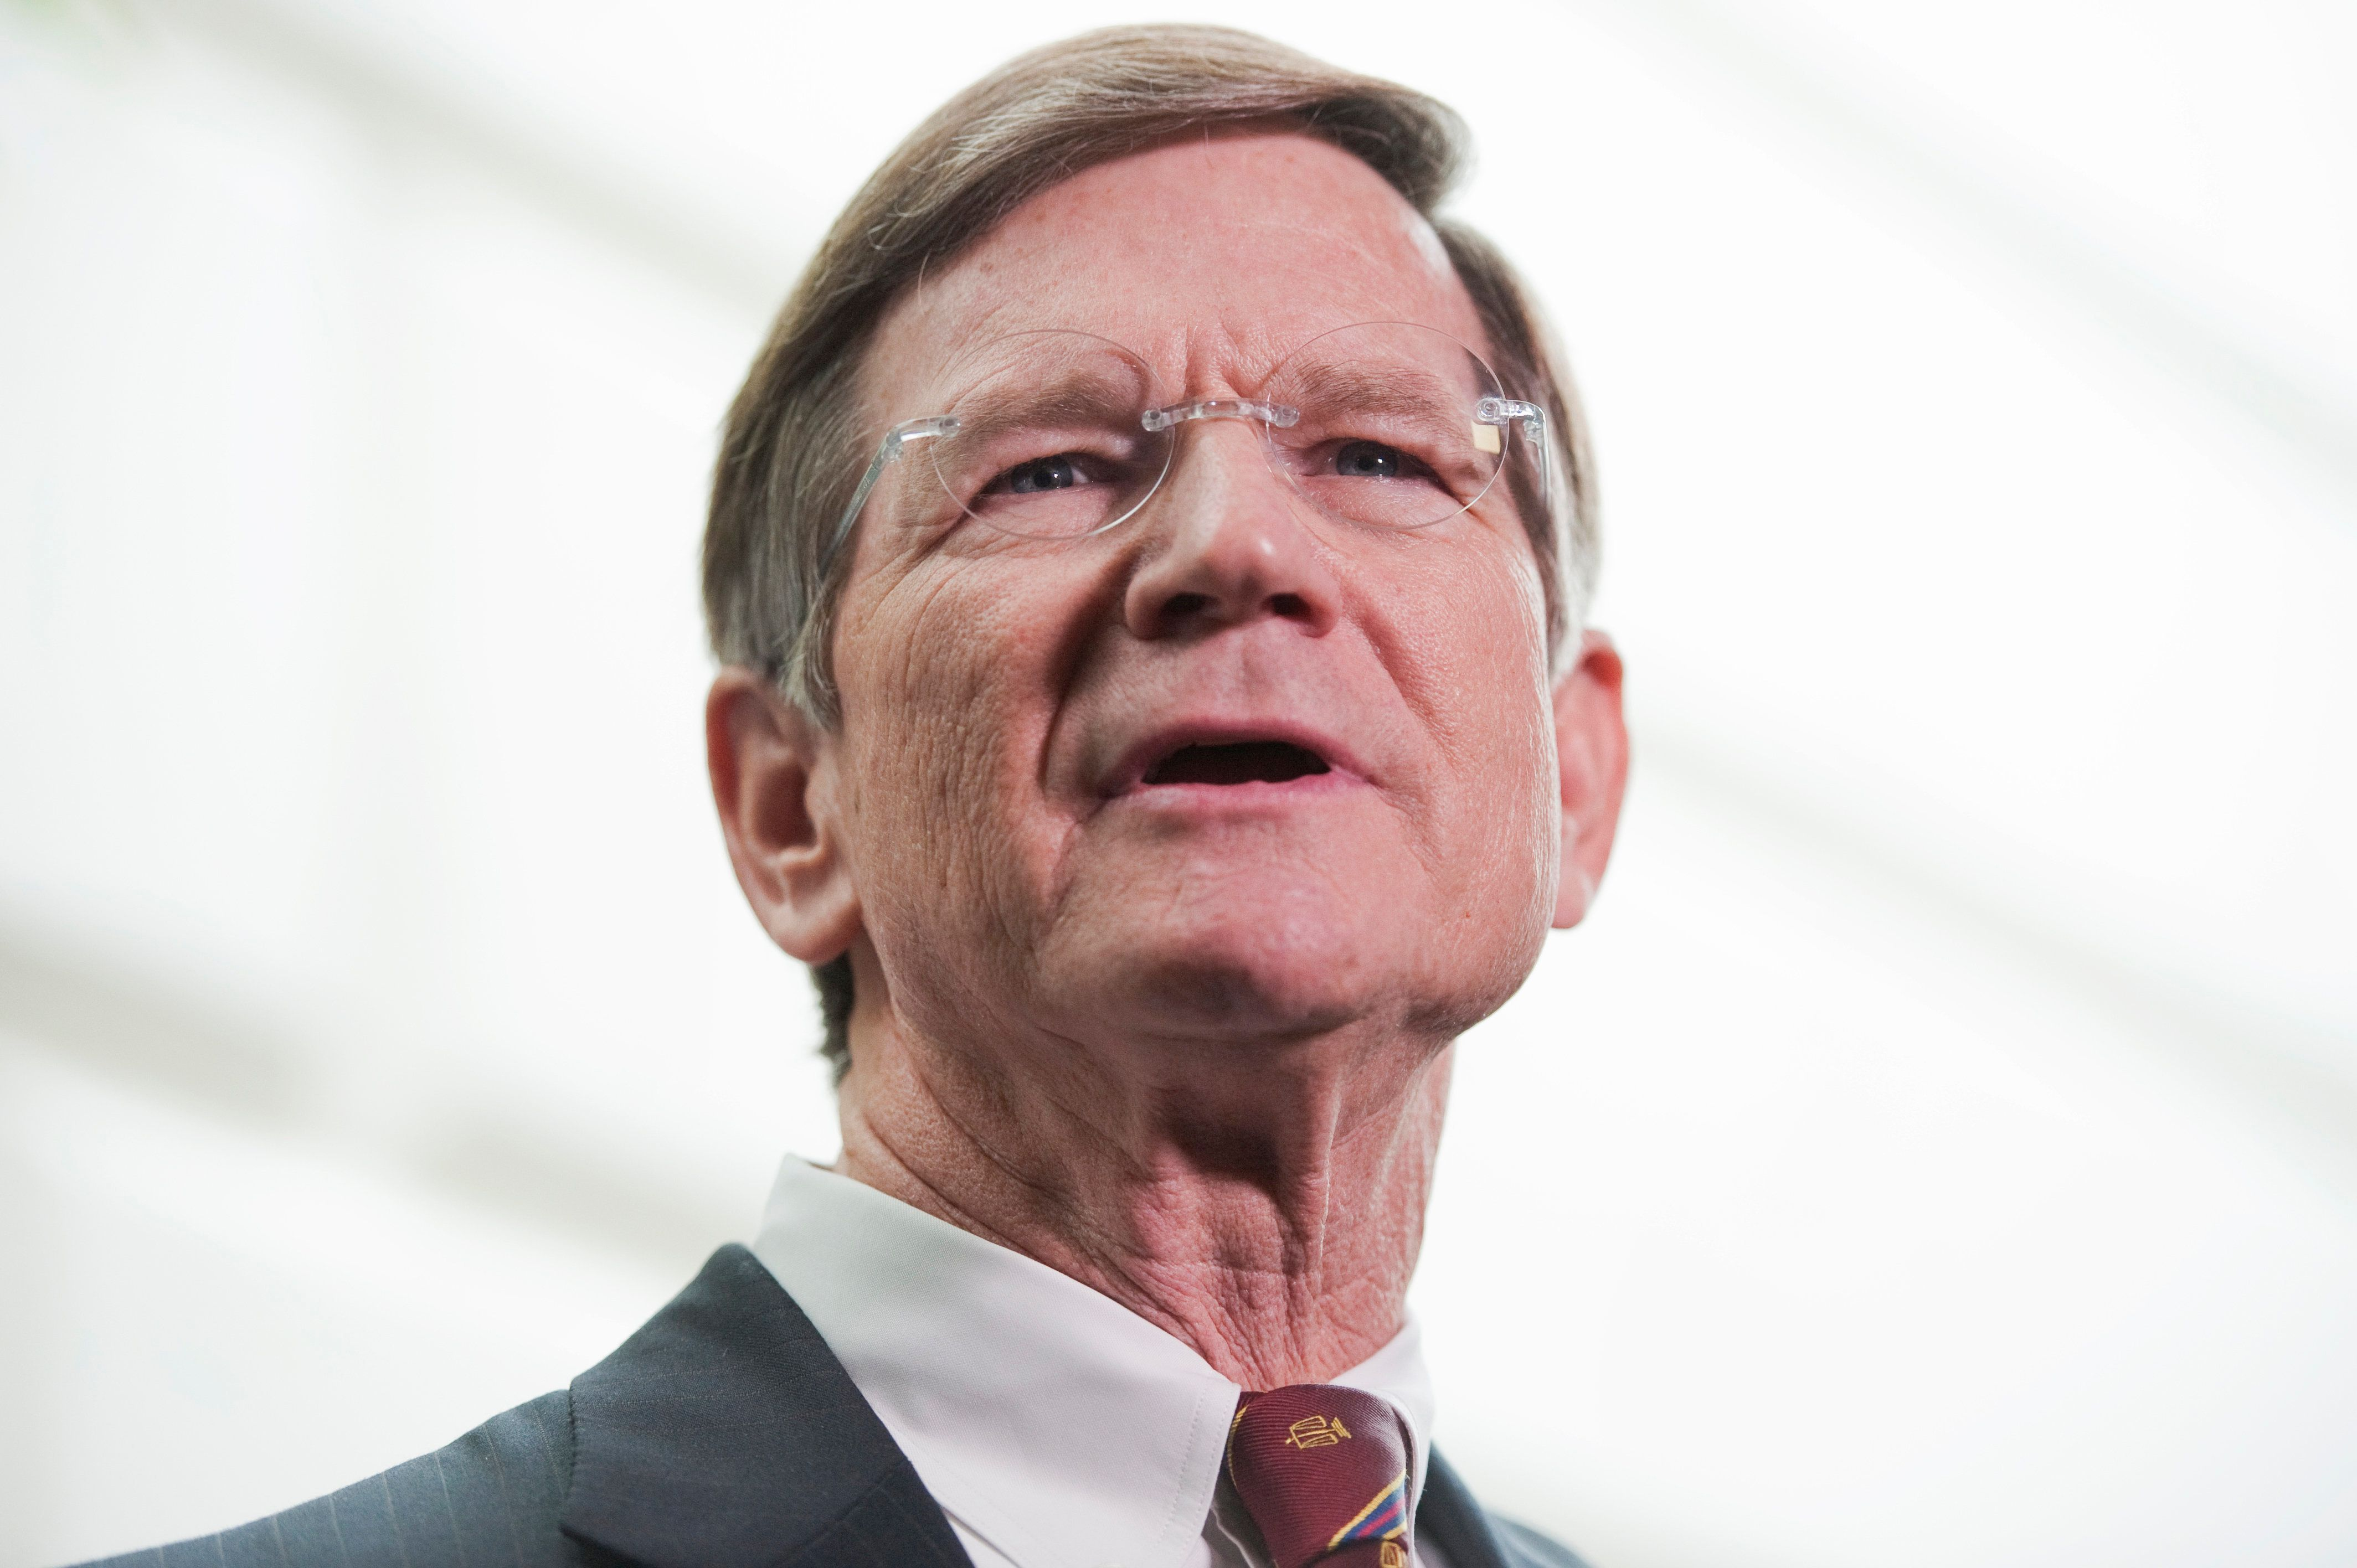 Rep. Lamar Smith is in a battle about climate science.